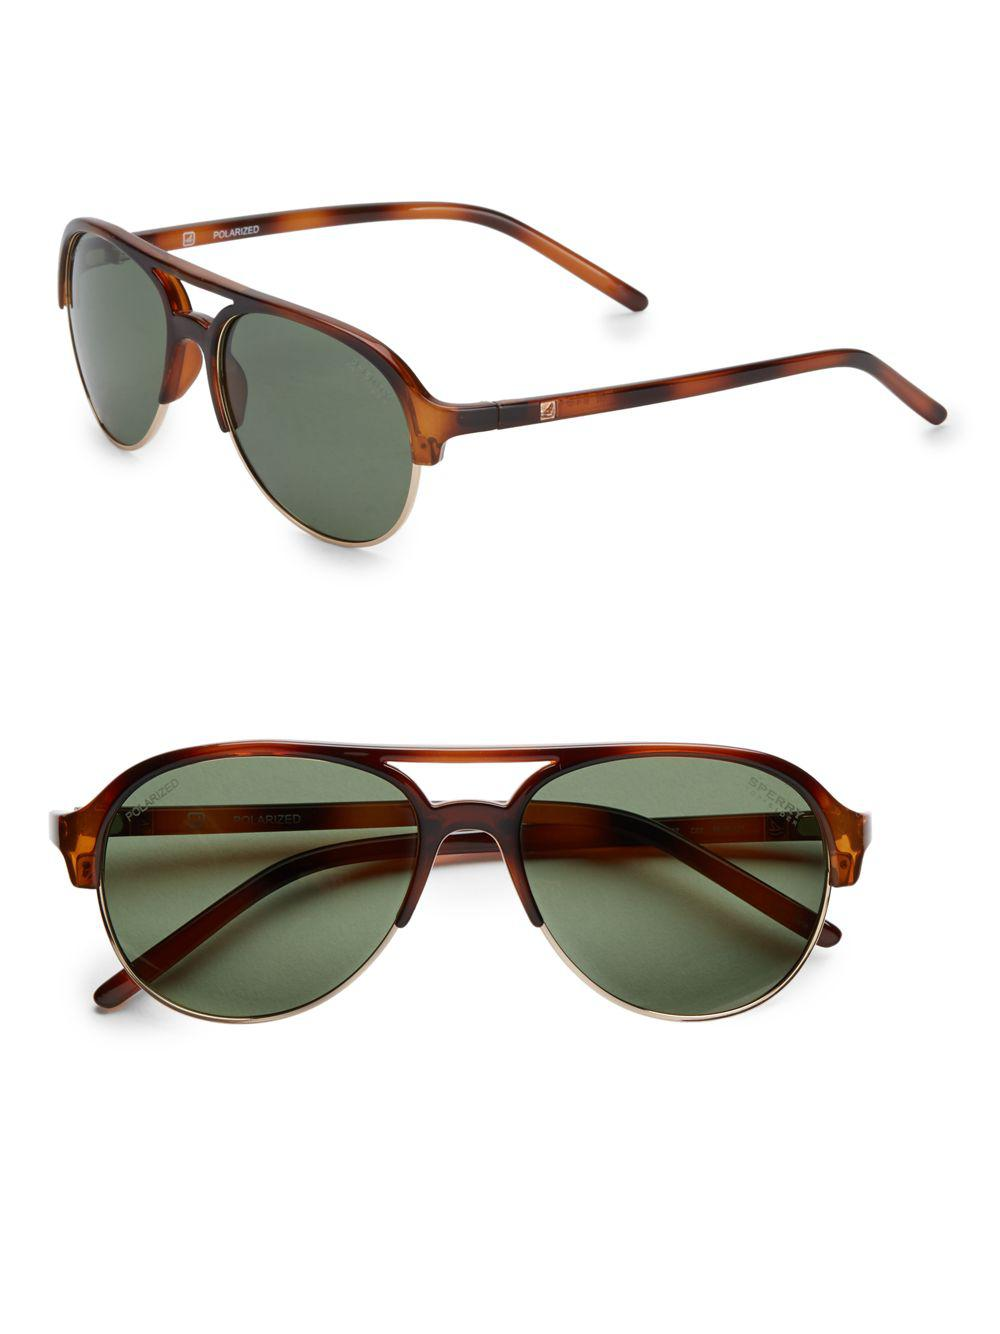 756cbb8a63 Lyst - Sperry Top-Sider Sussex Oval Sunglasses in Green for Men